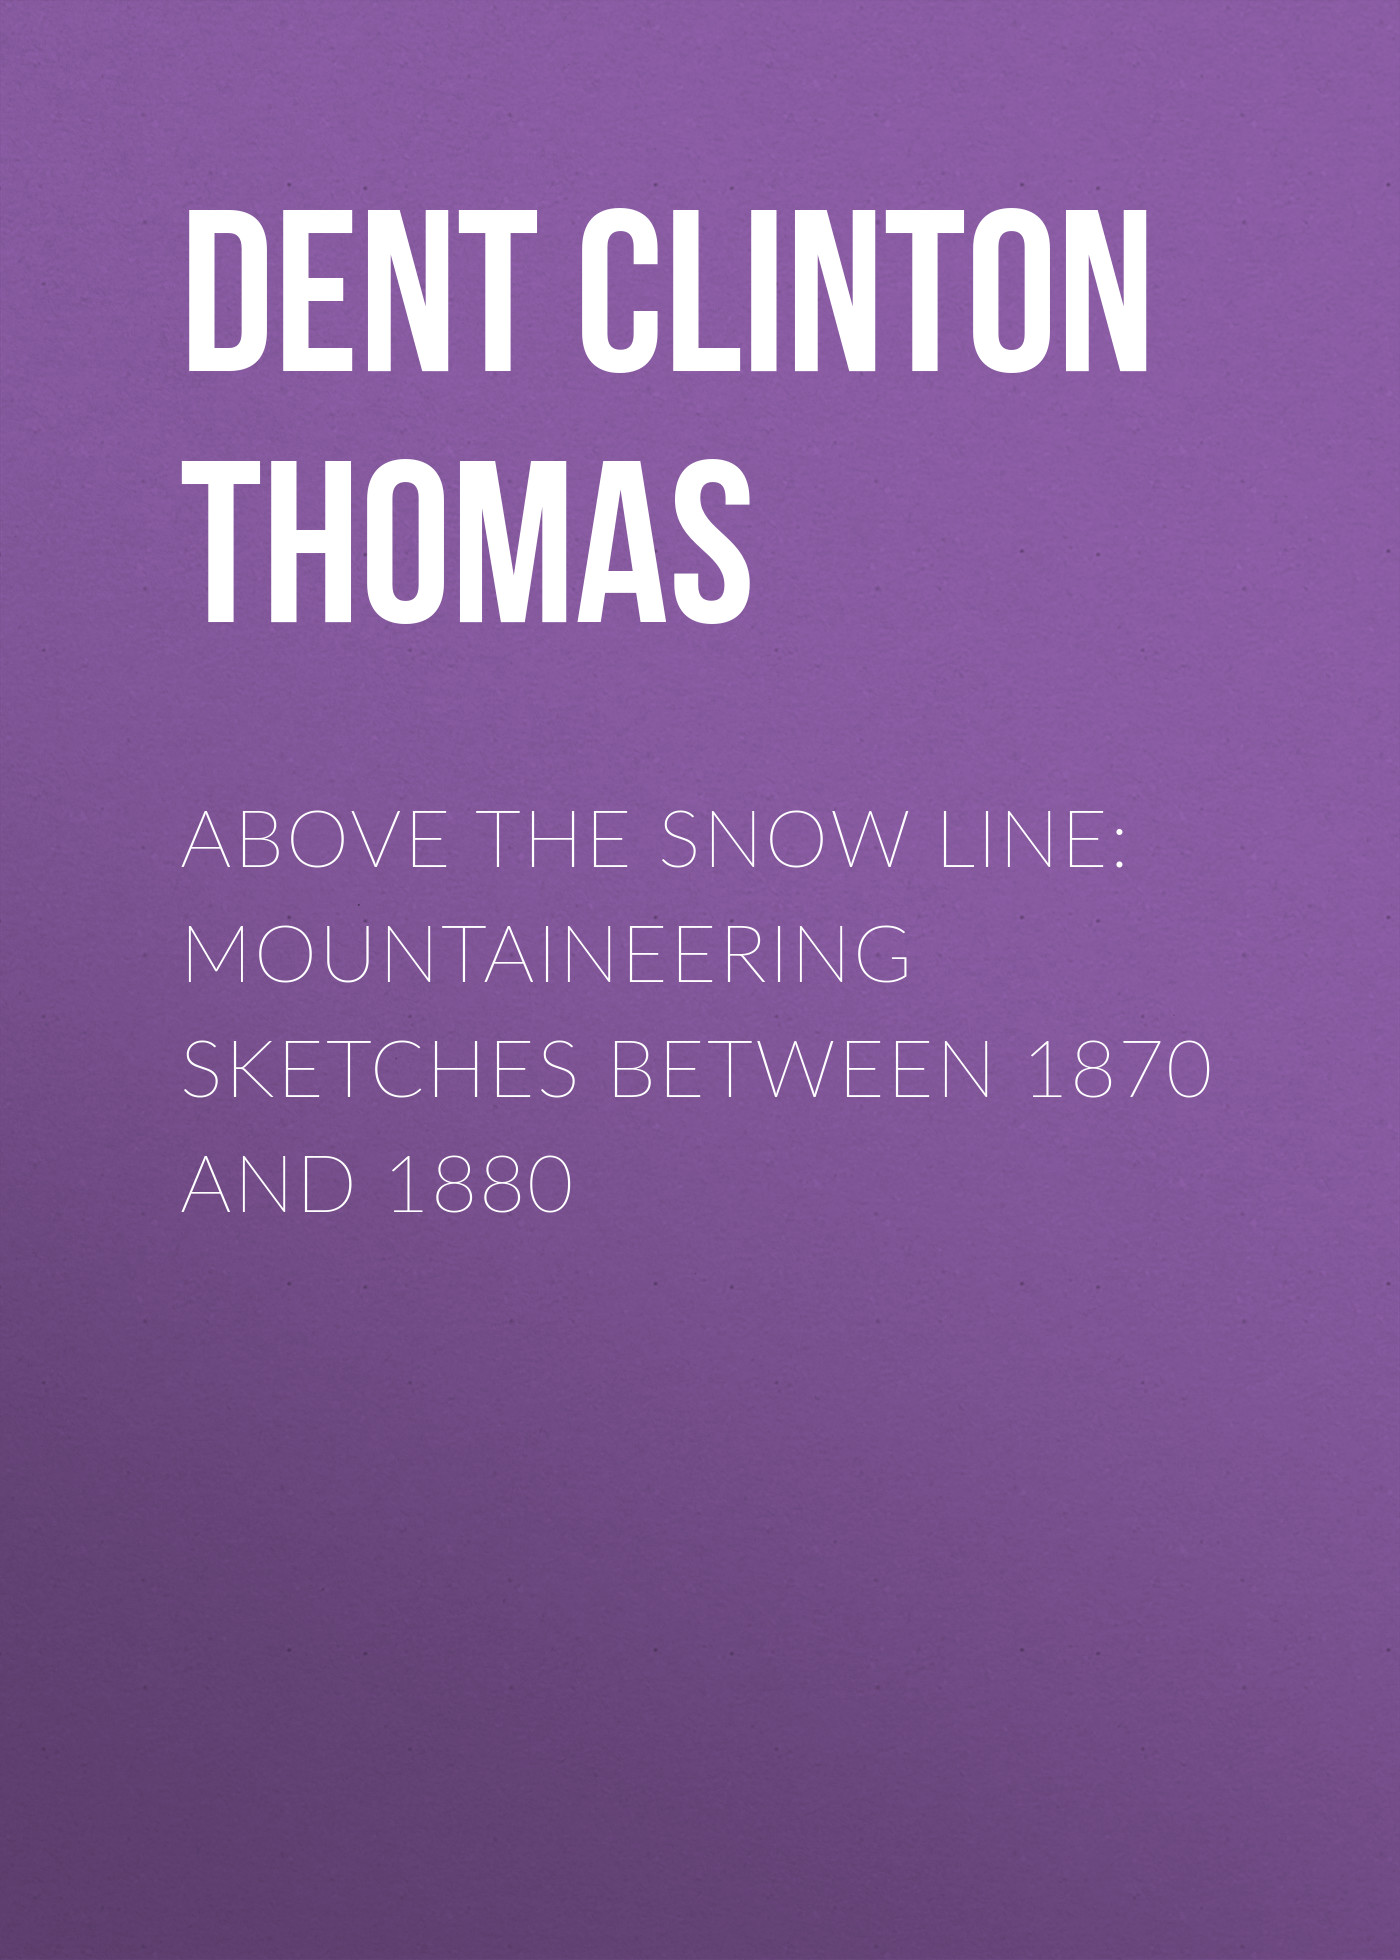 Dent Clinton Thomas Above the Snow Line: Mountaineering Sketches Between 1870 and 1880